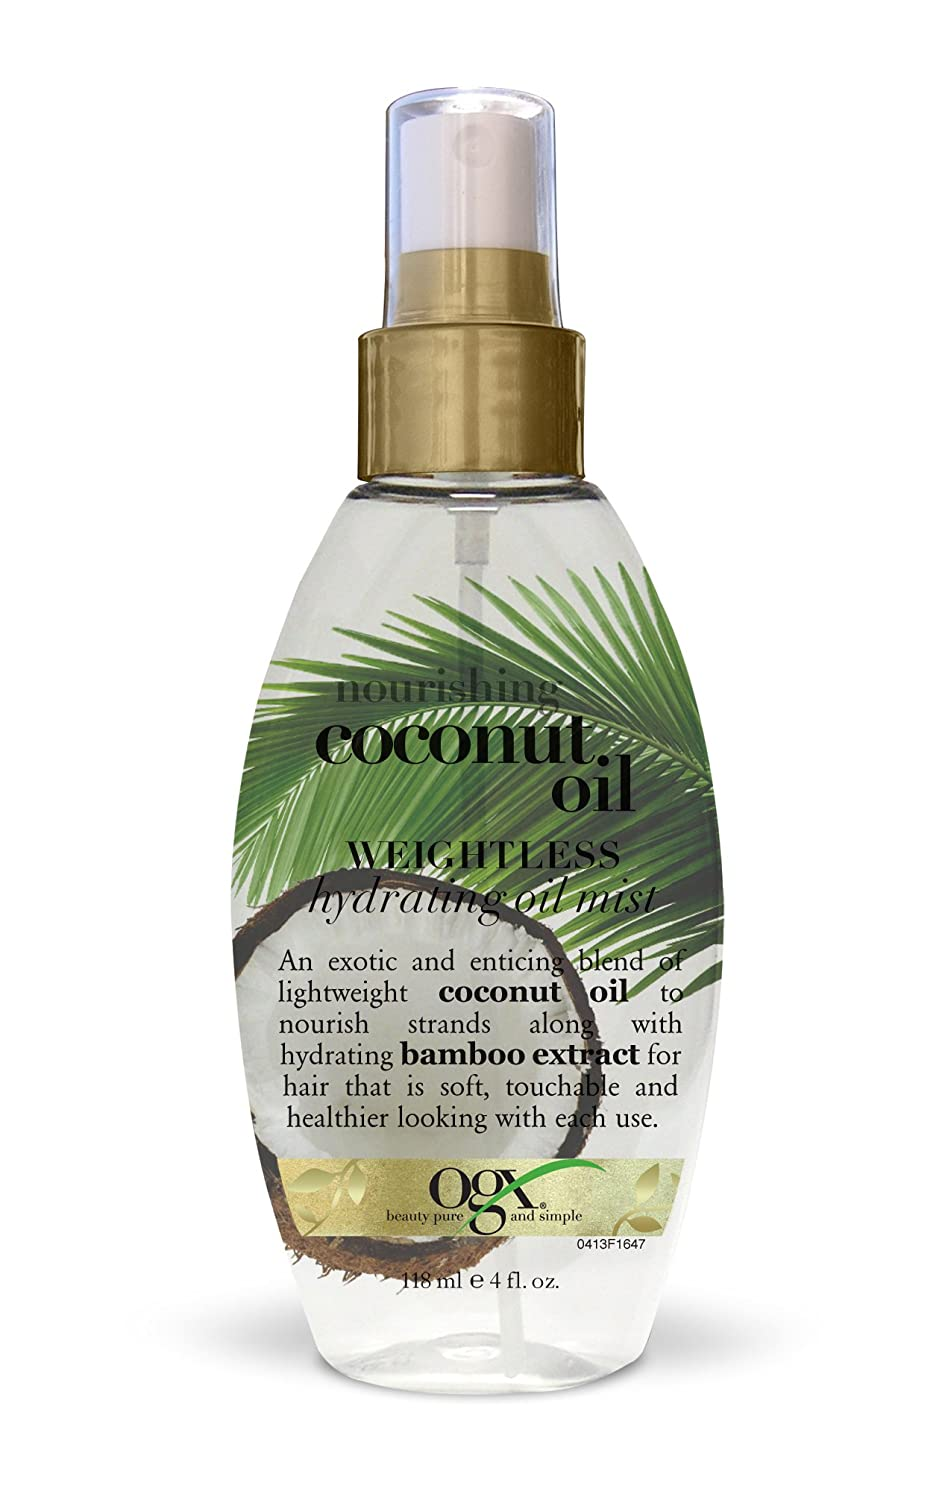 Amazoncom  OGX Weightless Hydrating Oil Mist Nourishing Coconut - How to use coconut oil on hair